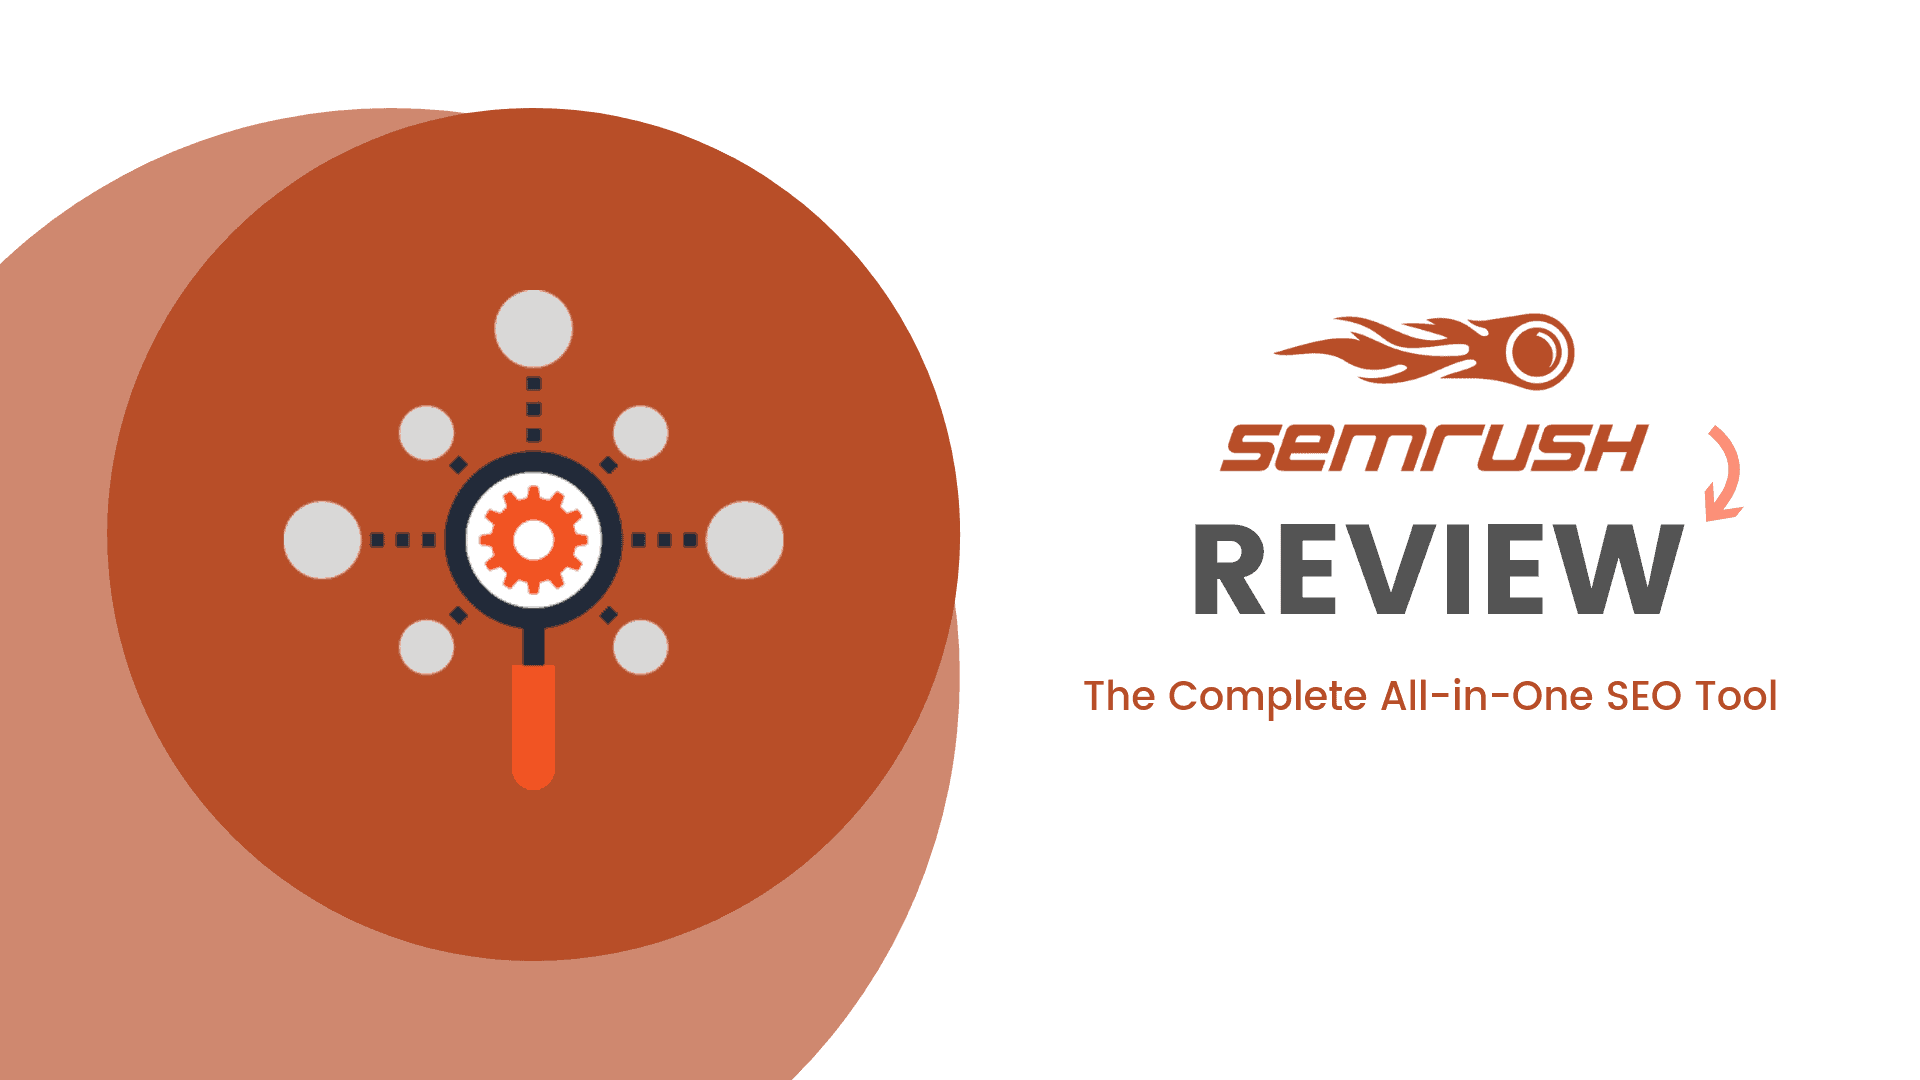 2020 Alternative To Semrush